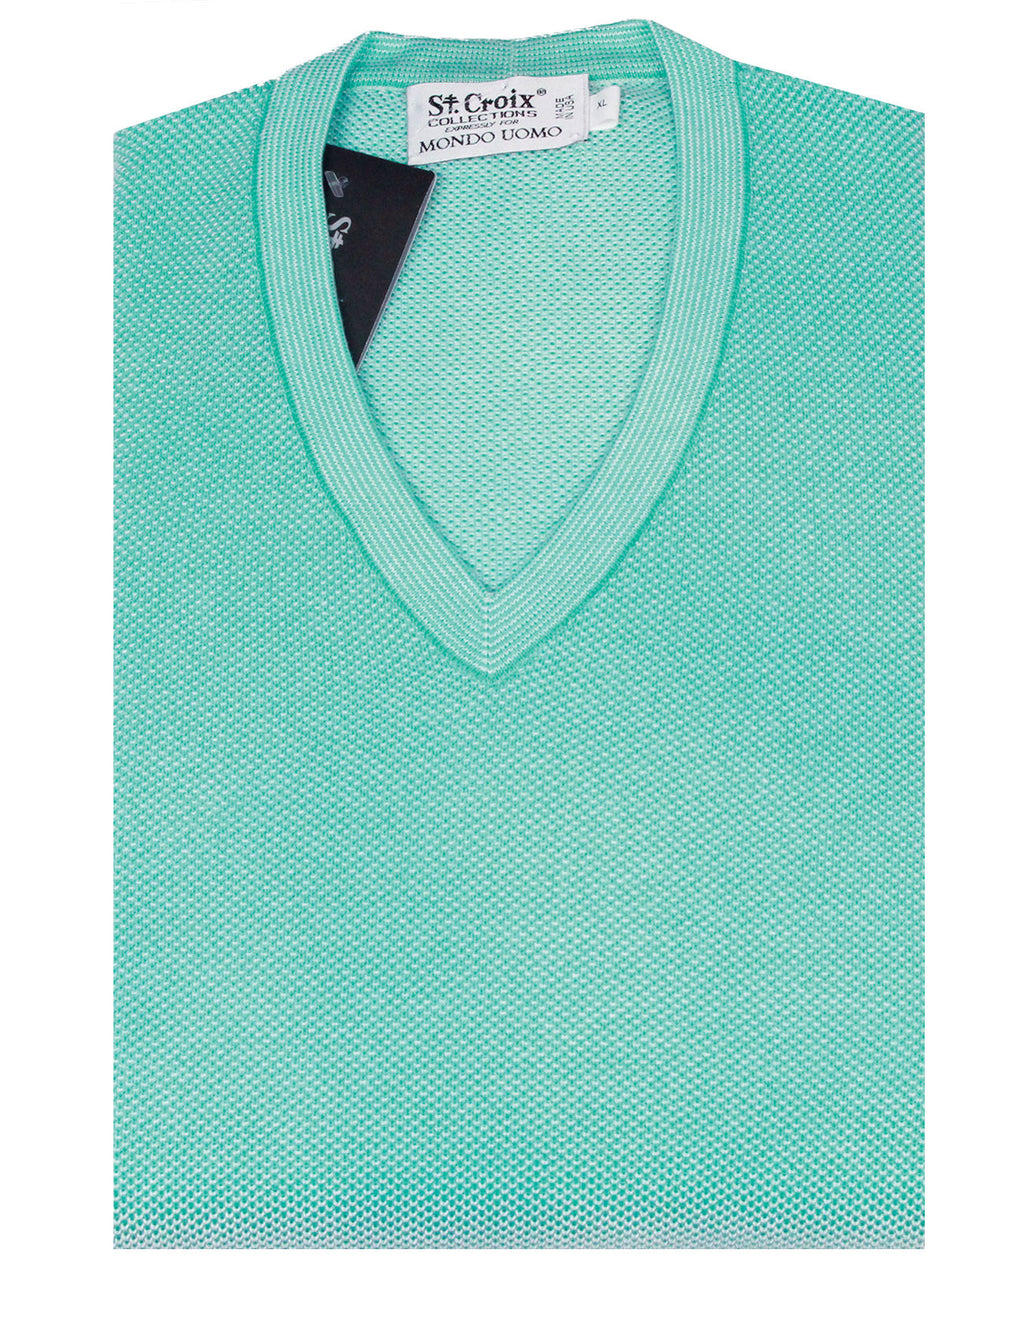 St Croix Sweater V Neck Turquoise